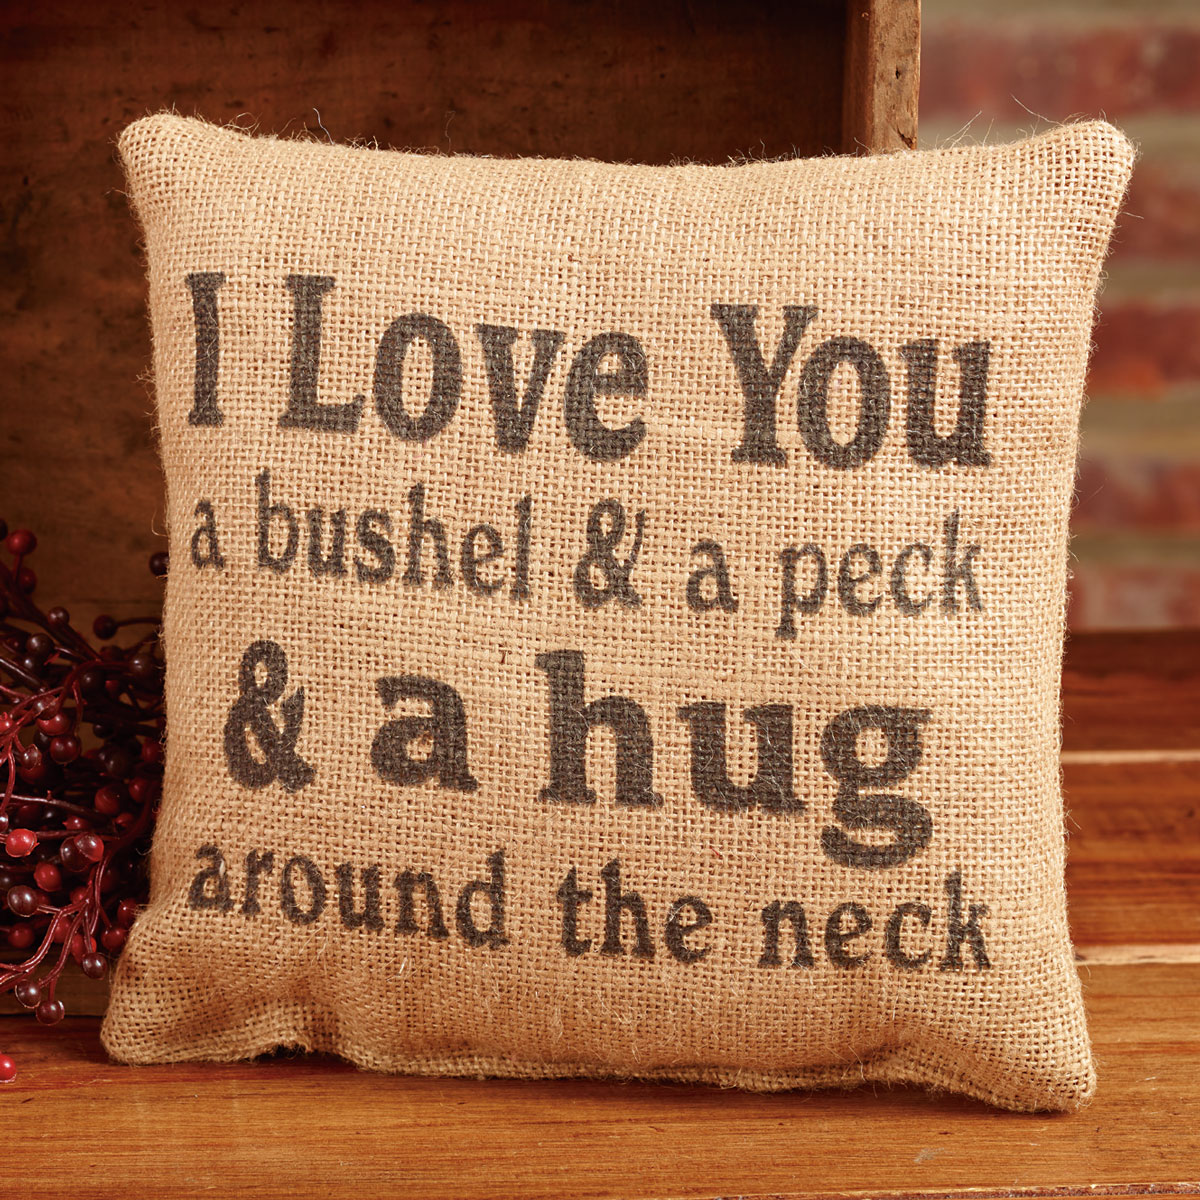 Small Burlap Bushel and Peck Country Pillow